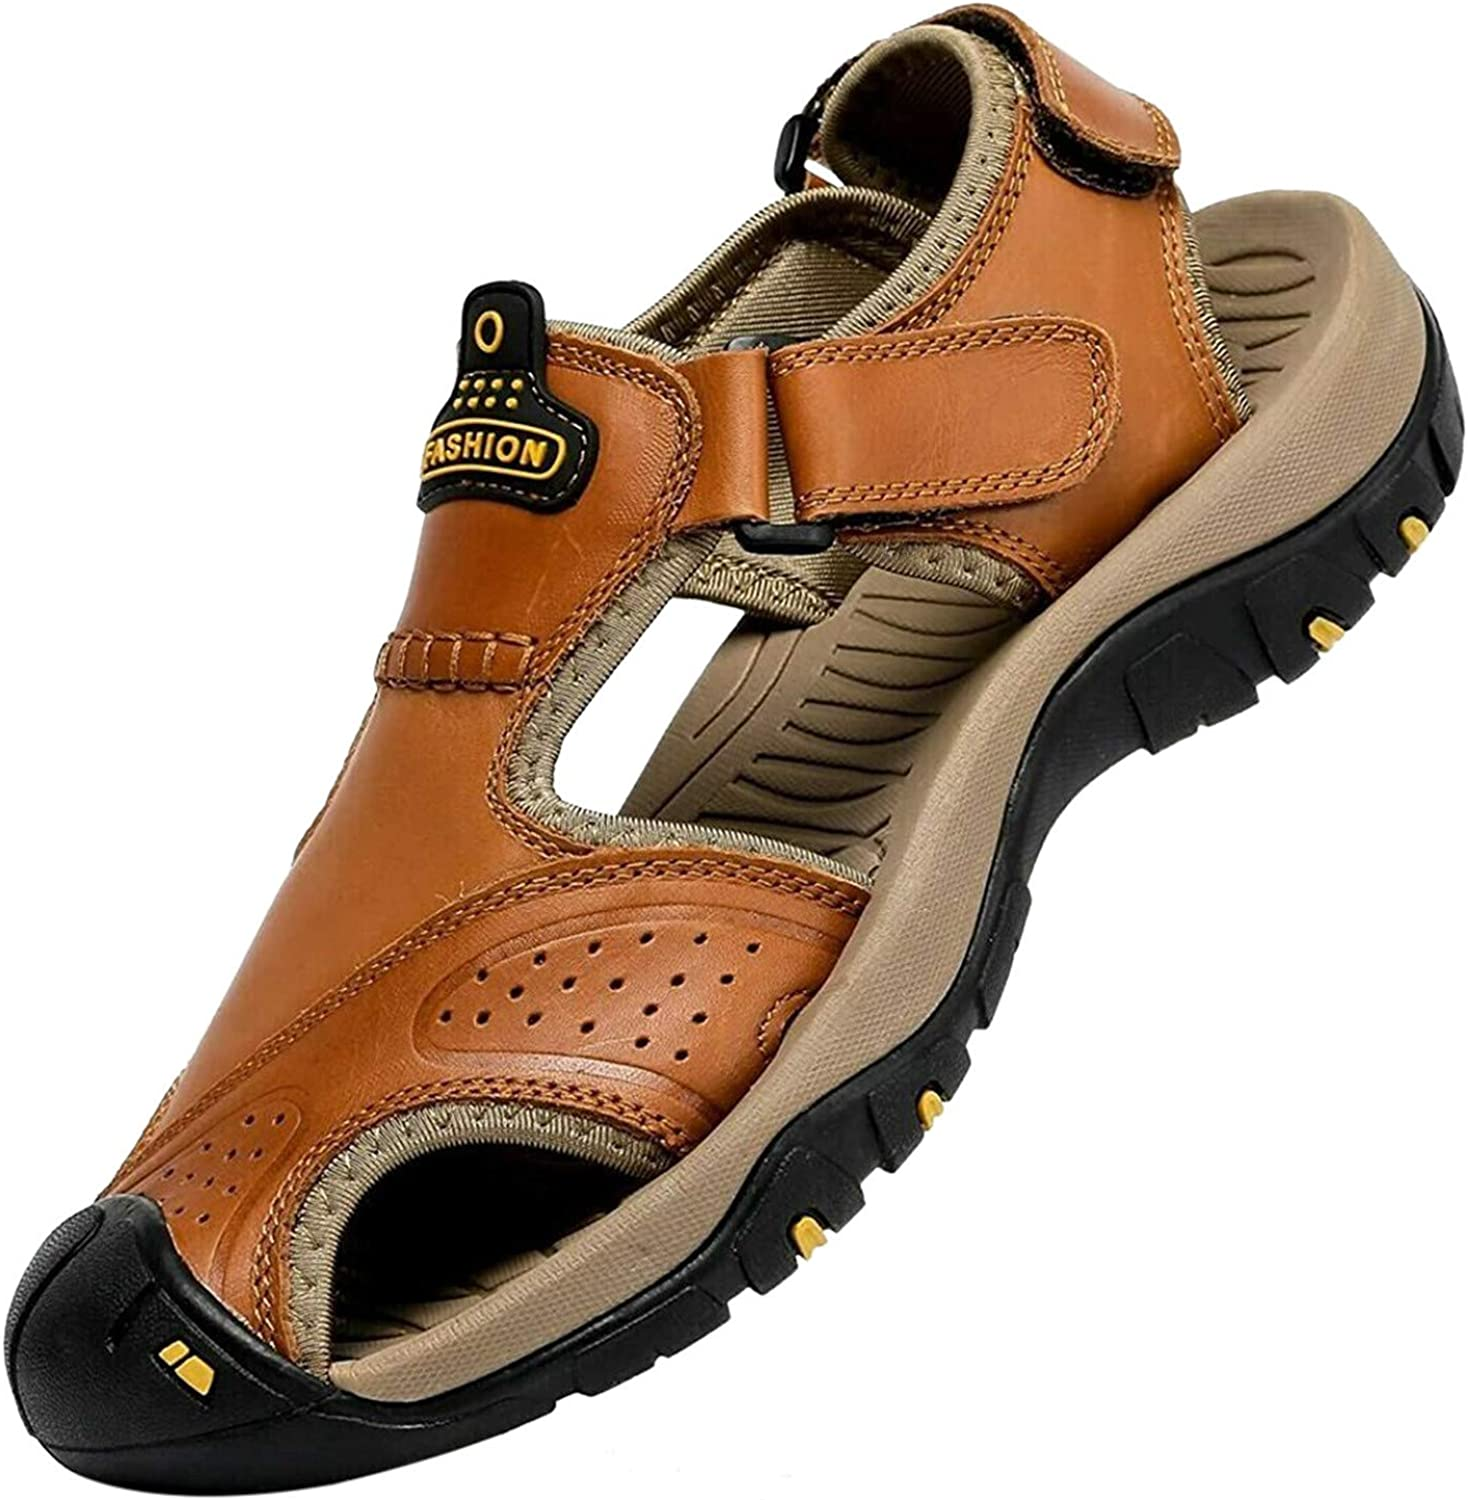 Men's Outdoor Hiking Sandals Protective Water Topcap Clos Shoes Portland Mall Ranking TOP7